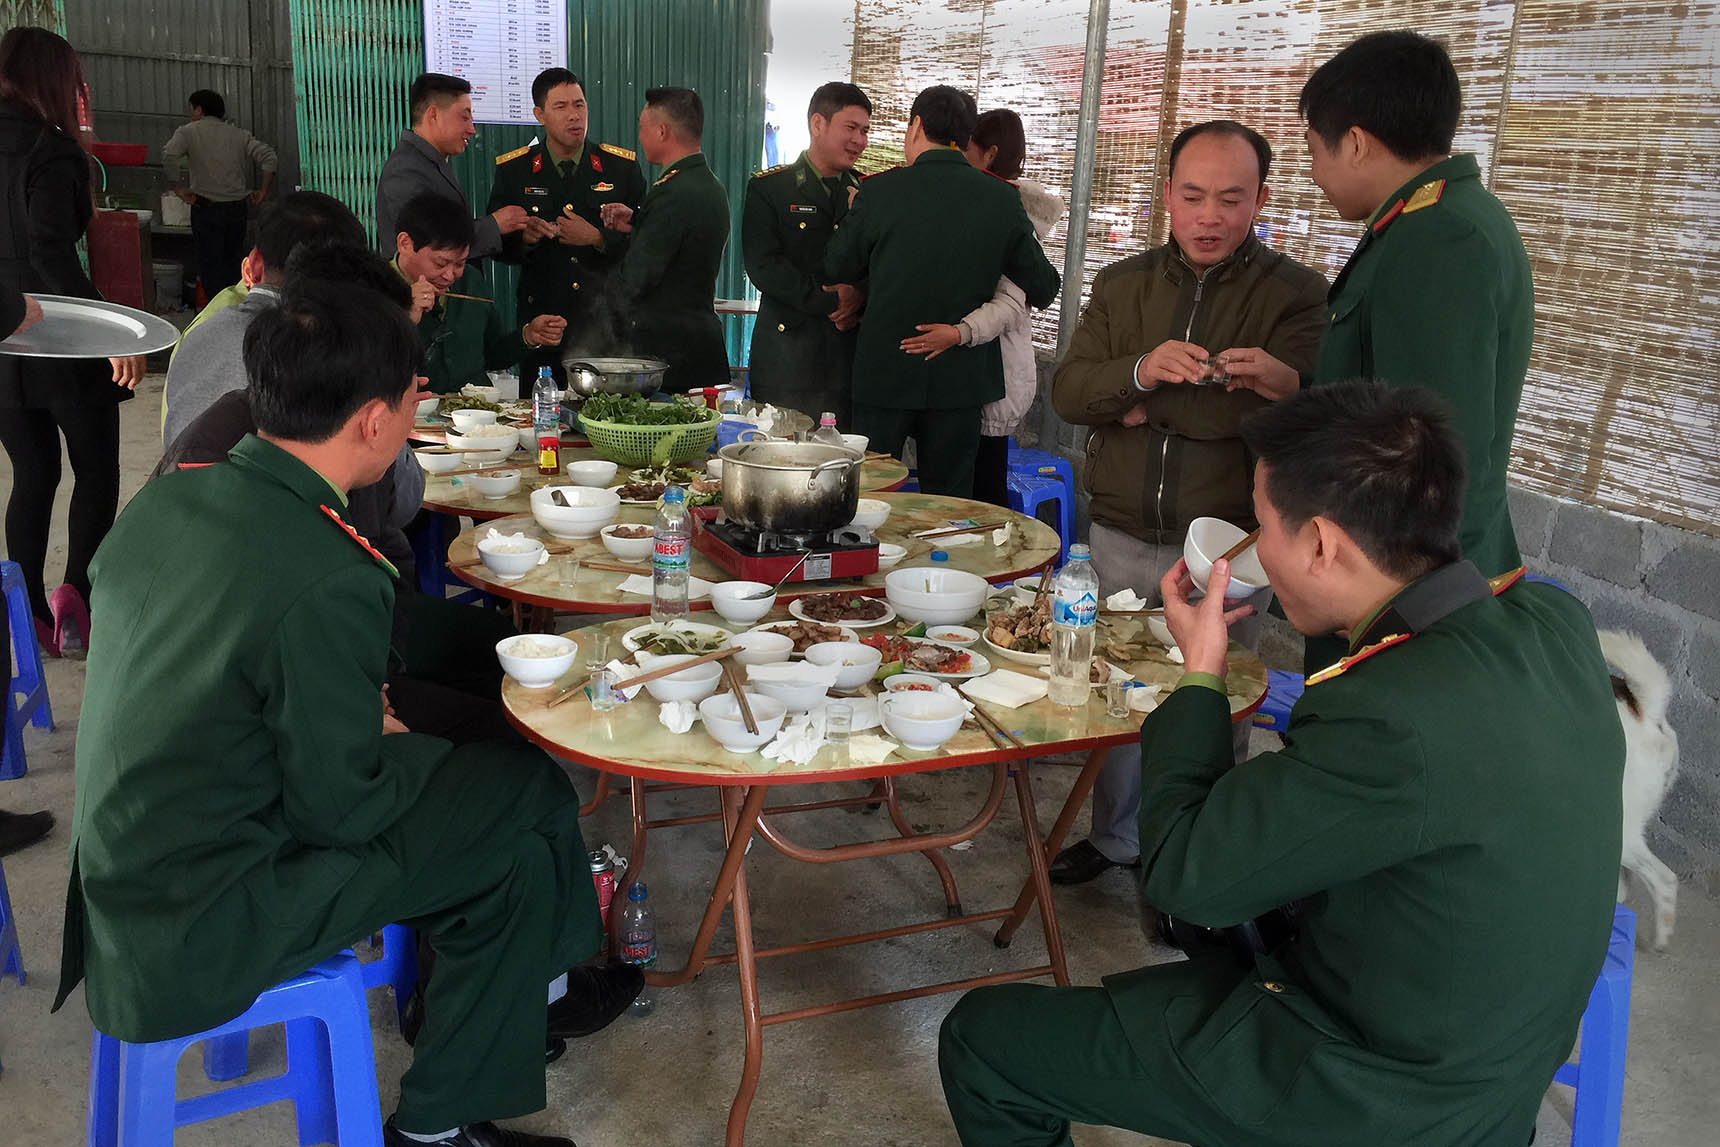 Lũng Cú, Government Officers Lunch